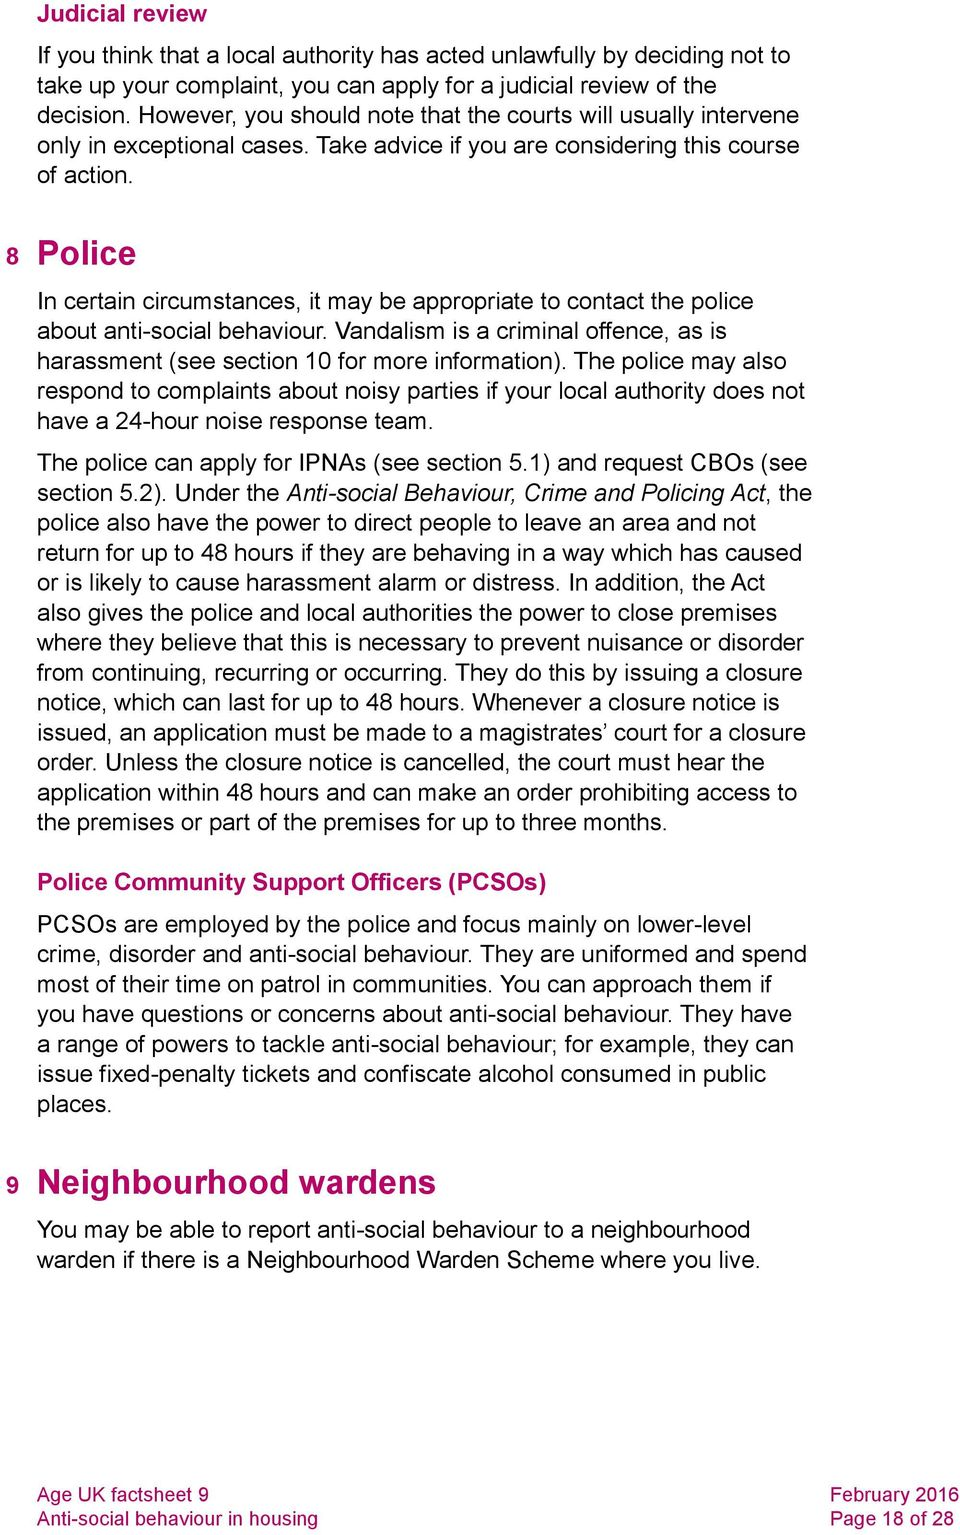 8 Police In certain circumstances, it may be appropriate to contact the police about anti-social behaviour. Vandalism is a criminal offence, as is harassment (see section 10 for more information).